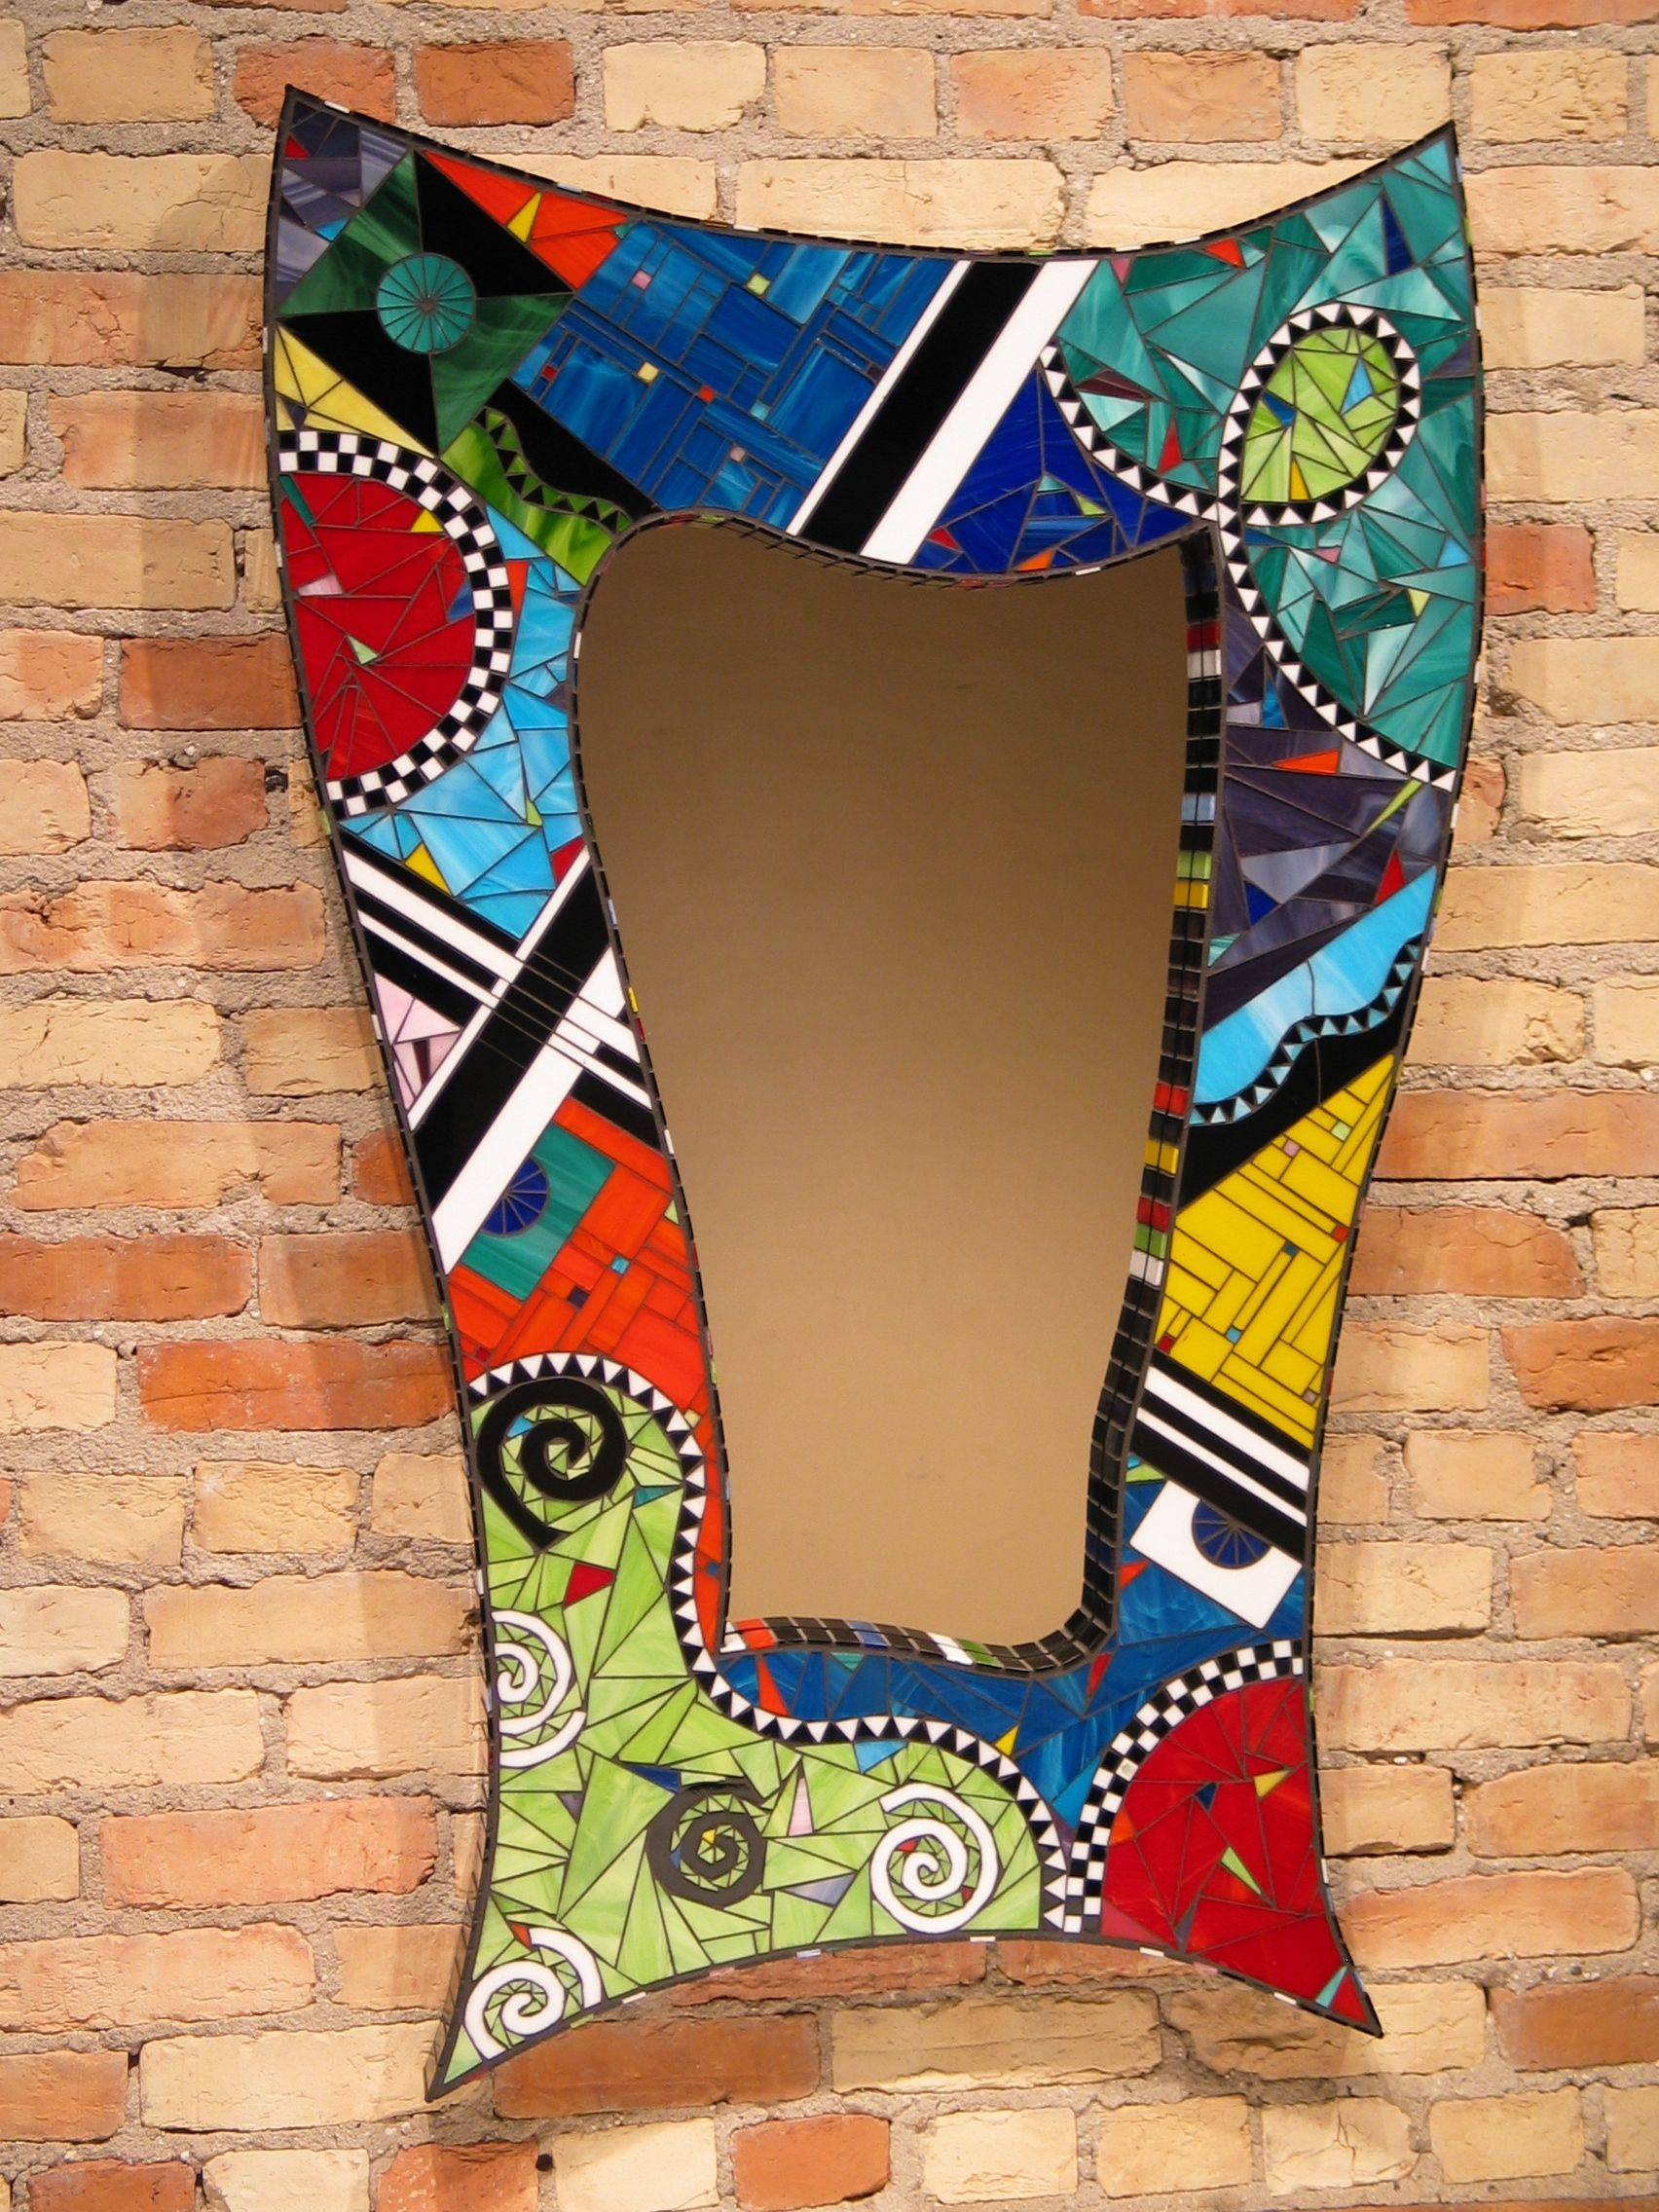 Images about cool design ideas on pinterest mosaic - 30 Creative Diy Items With Mosaic Decor